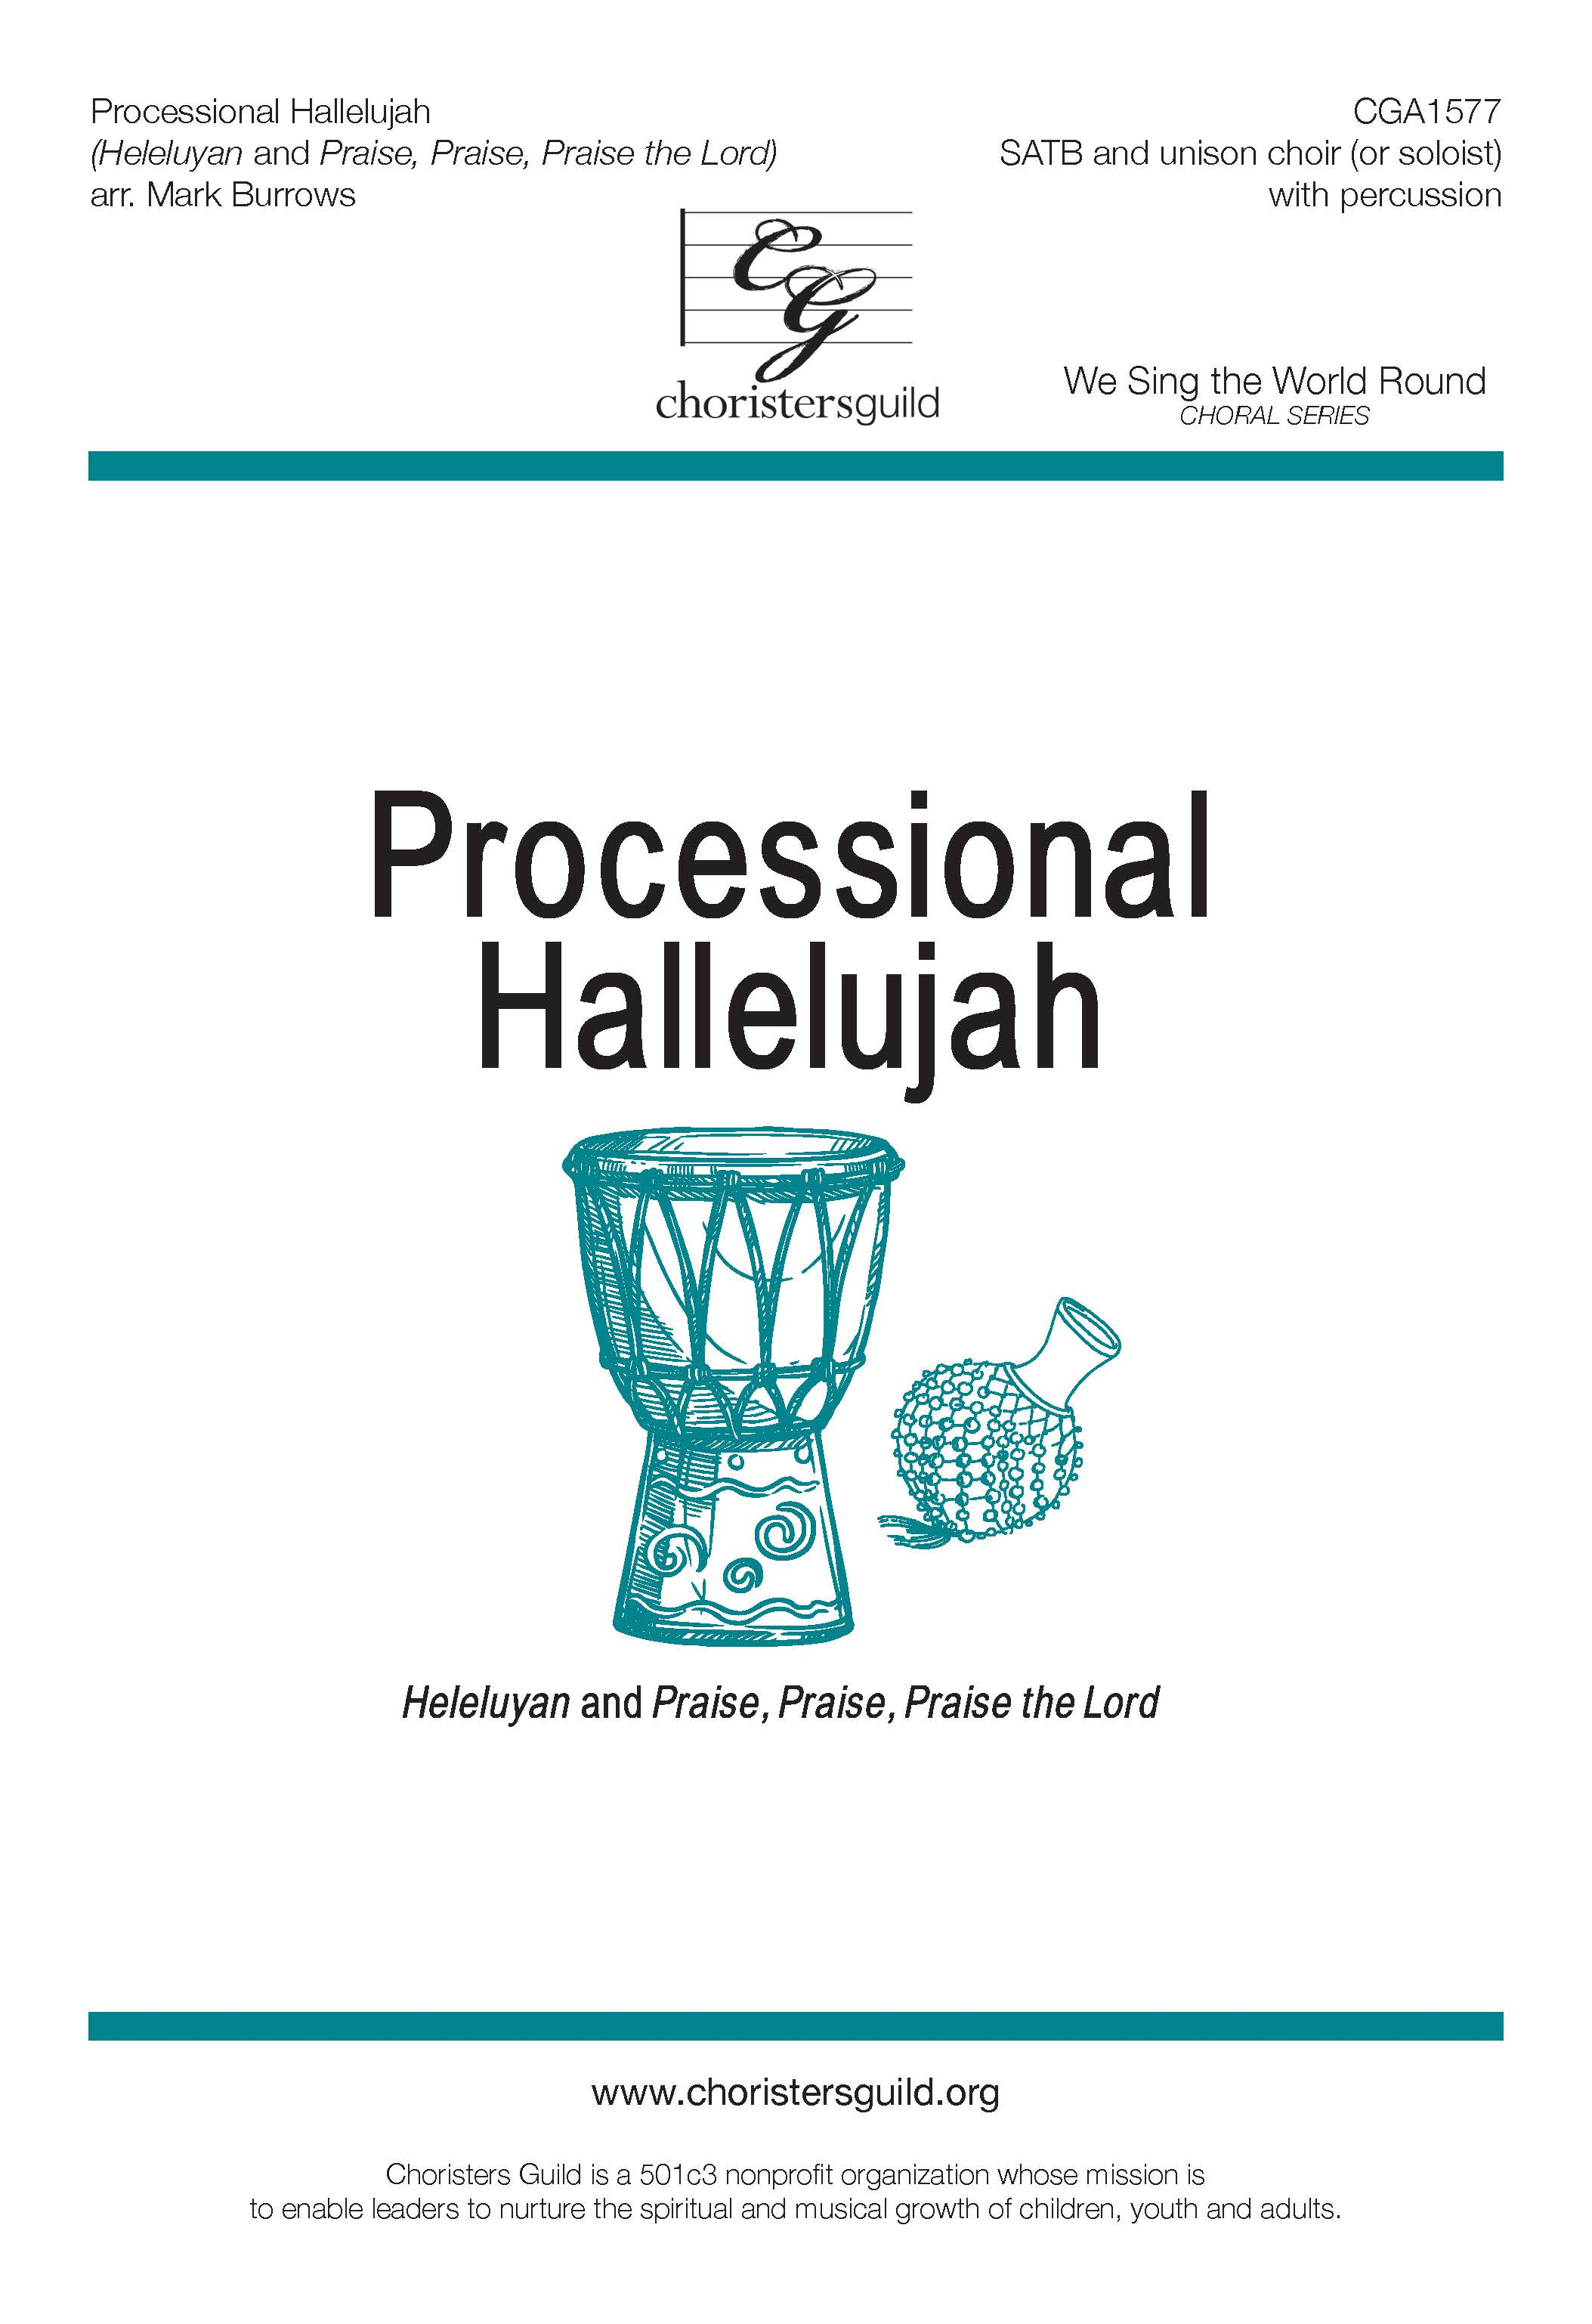 Processional Hallelujah (Heleluyan and Praise, Praise, Praise the Lord)